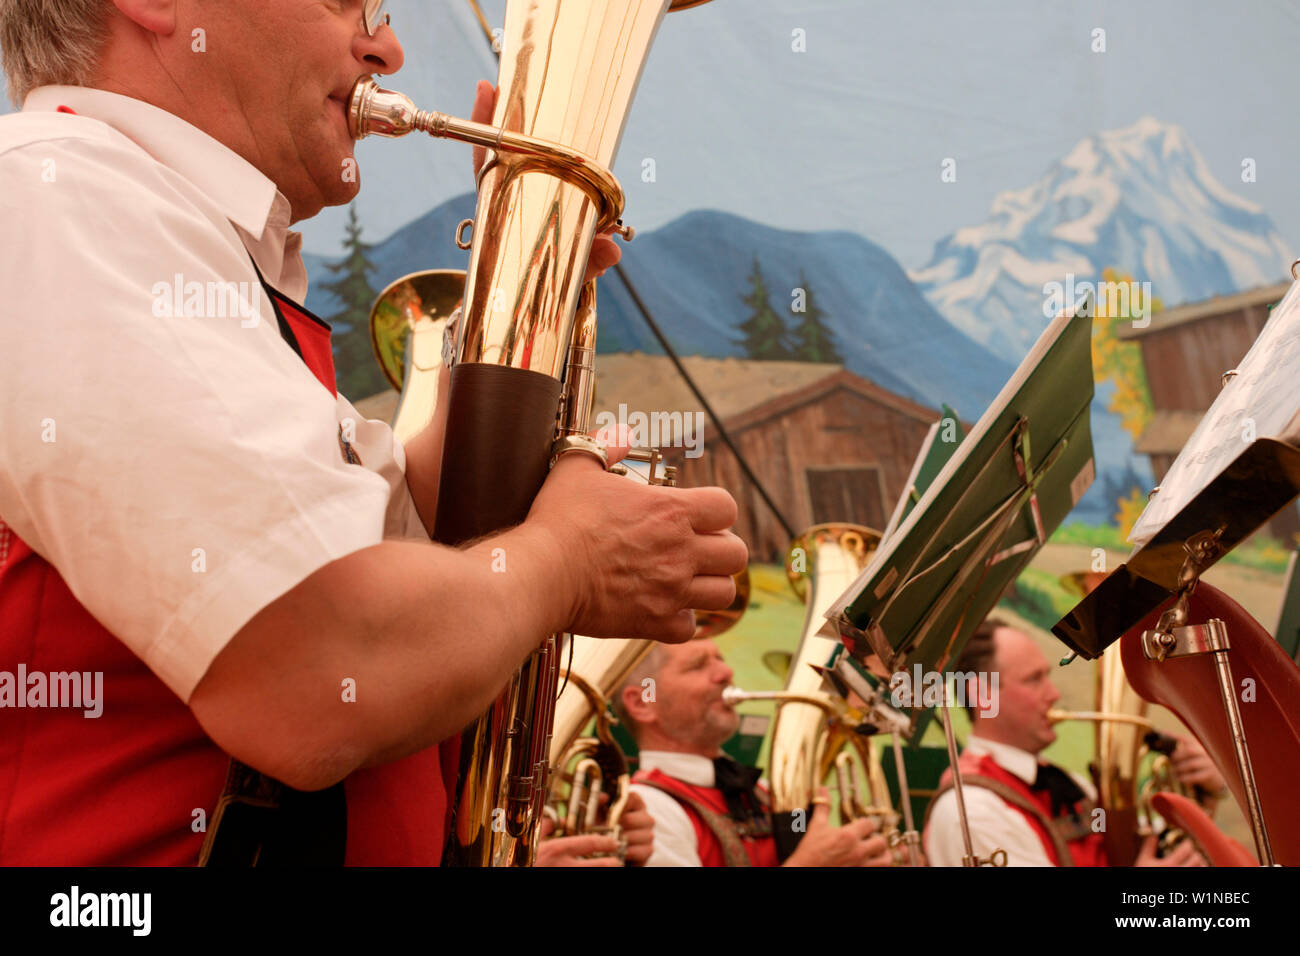 Brass Band and festival with folk music, Lofer, Salzburg, Austria - Stock Image